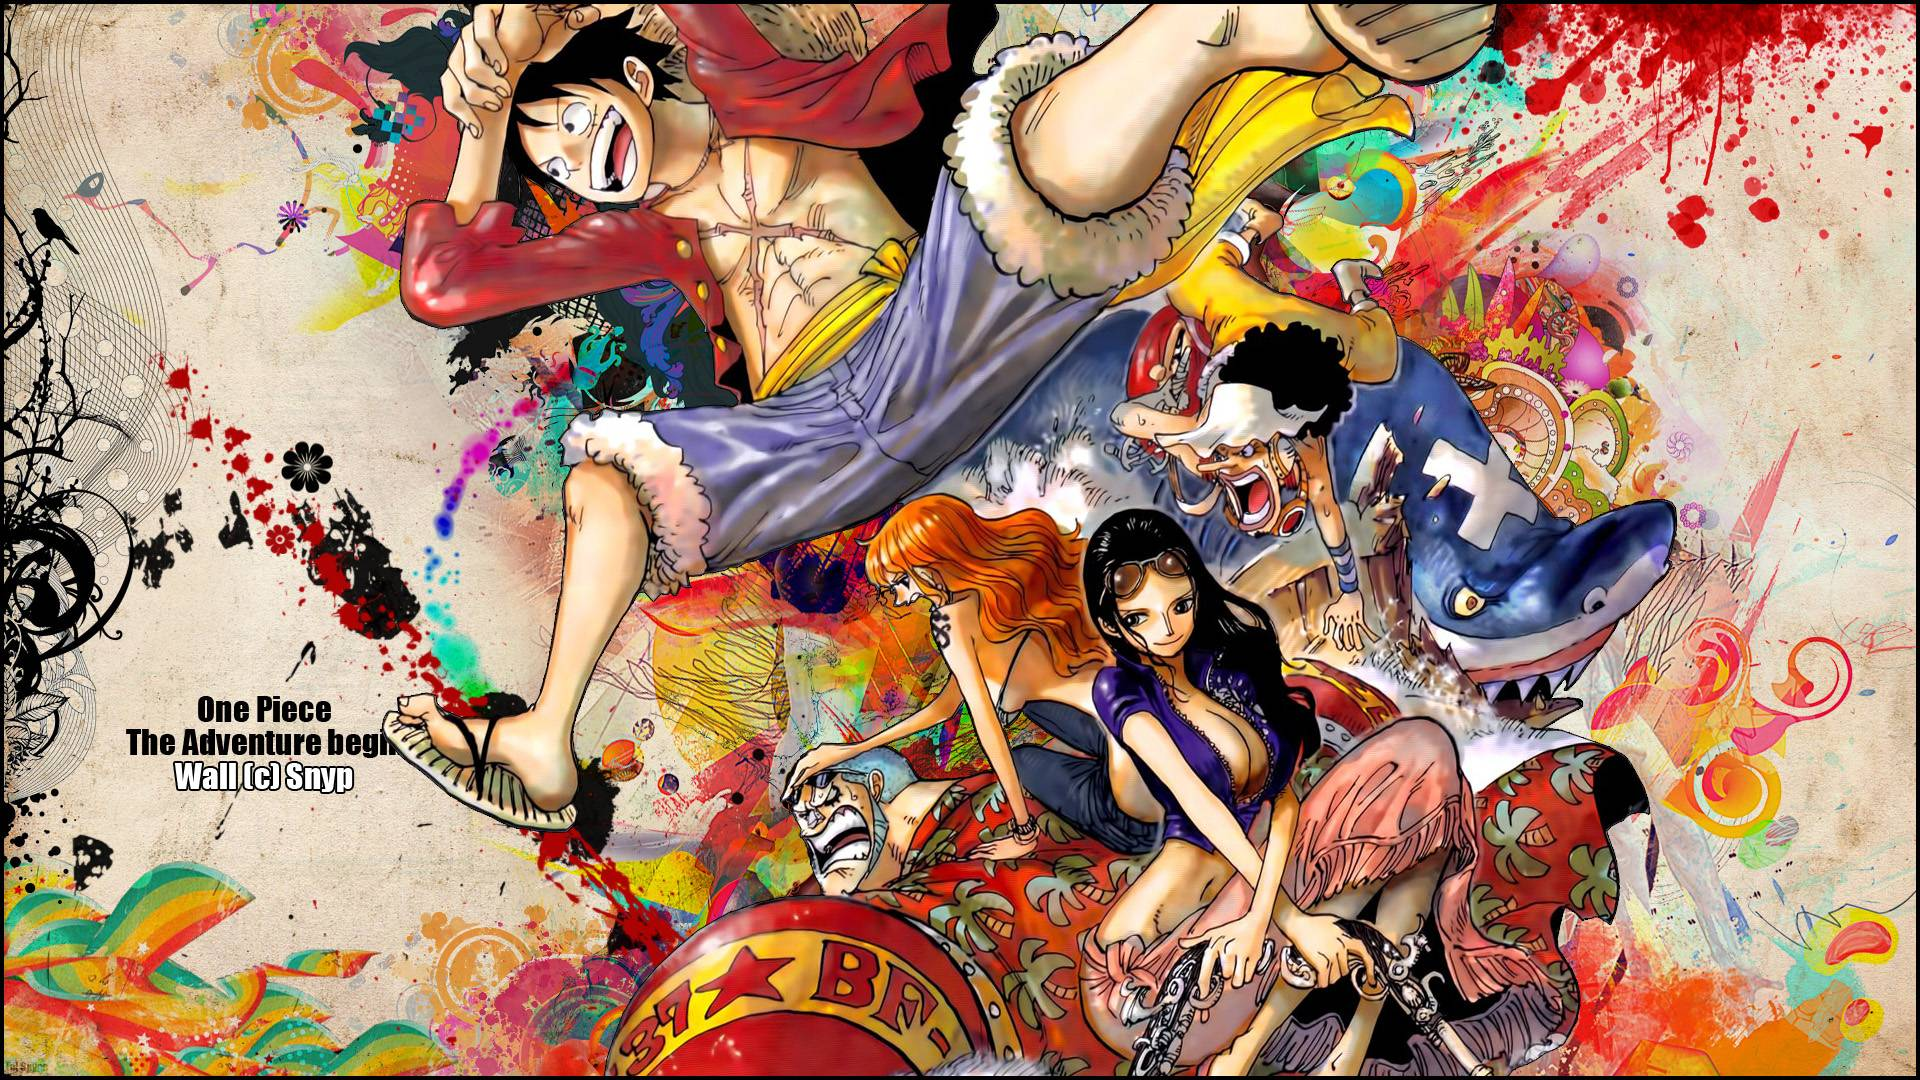 Sizing also makes later remov. One Piece Wallpapers - Wallpaper Cave